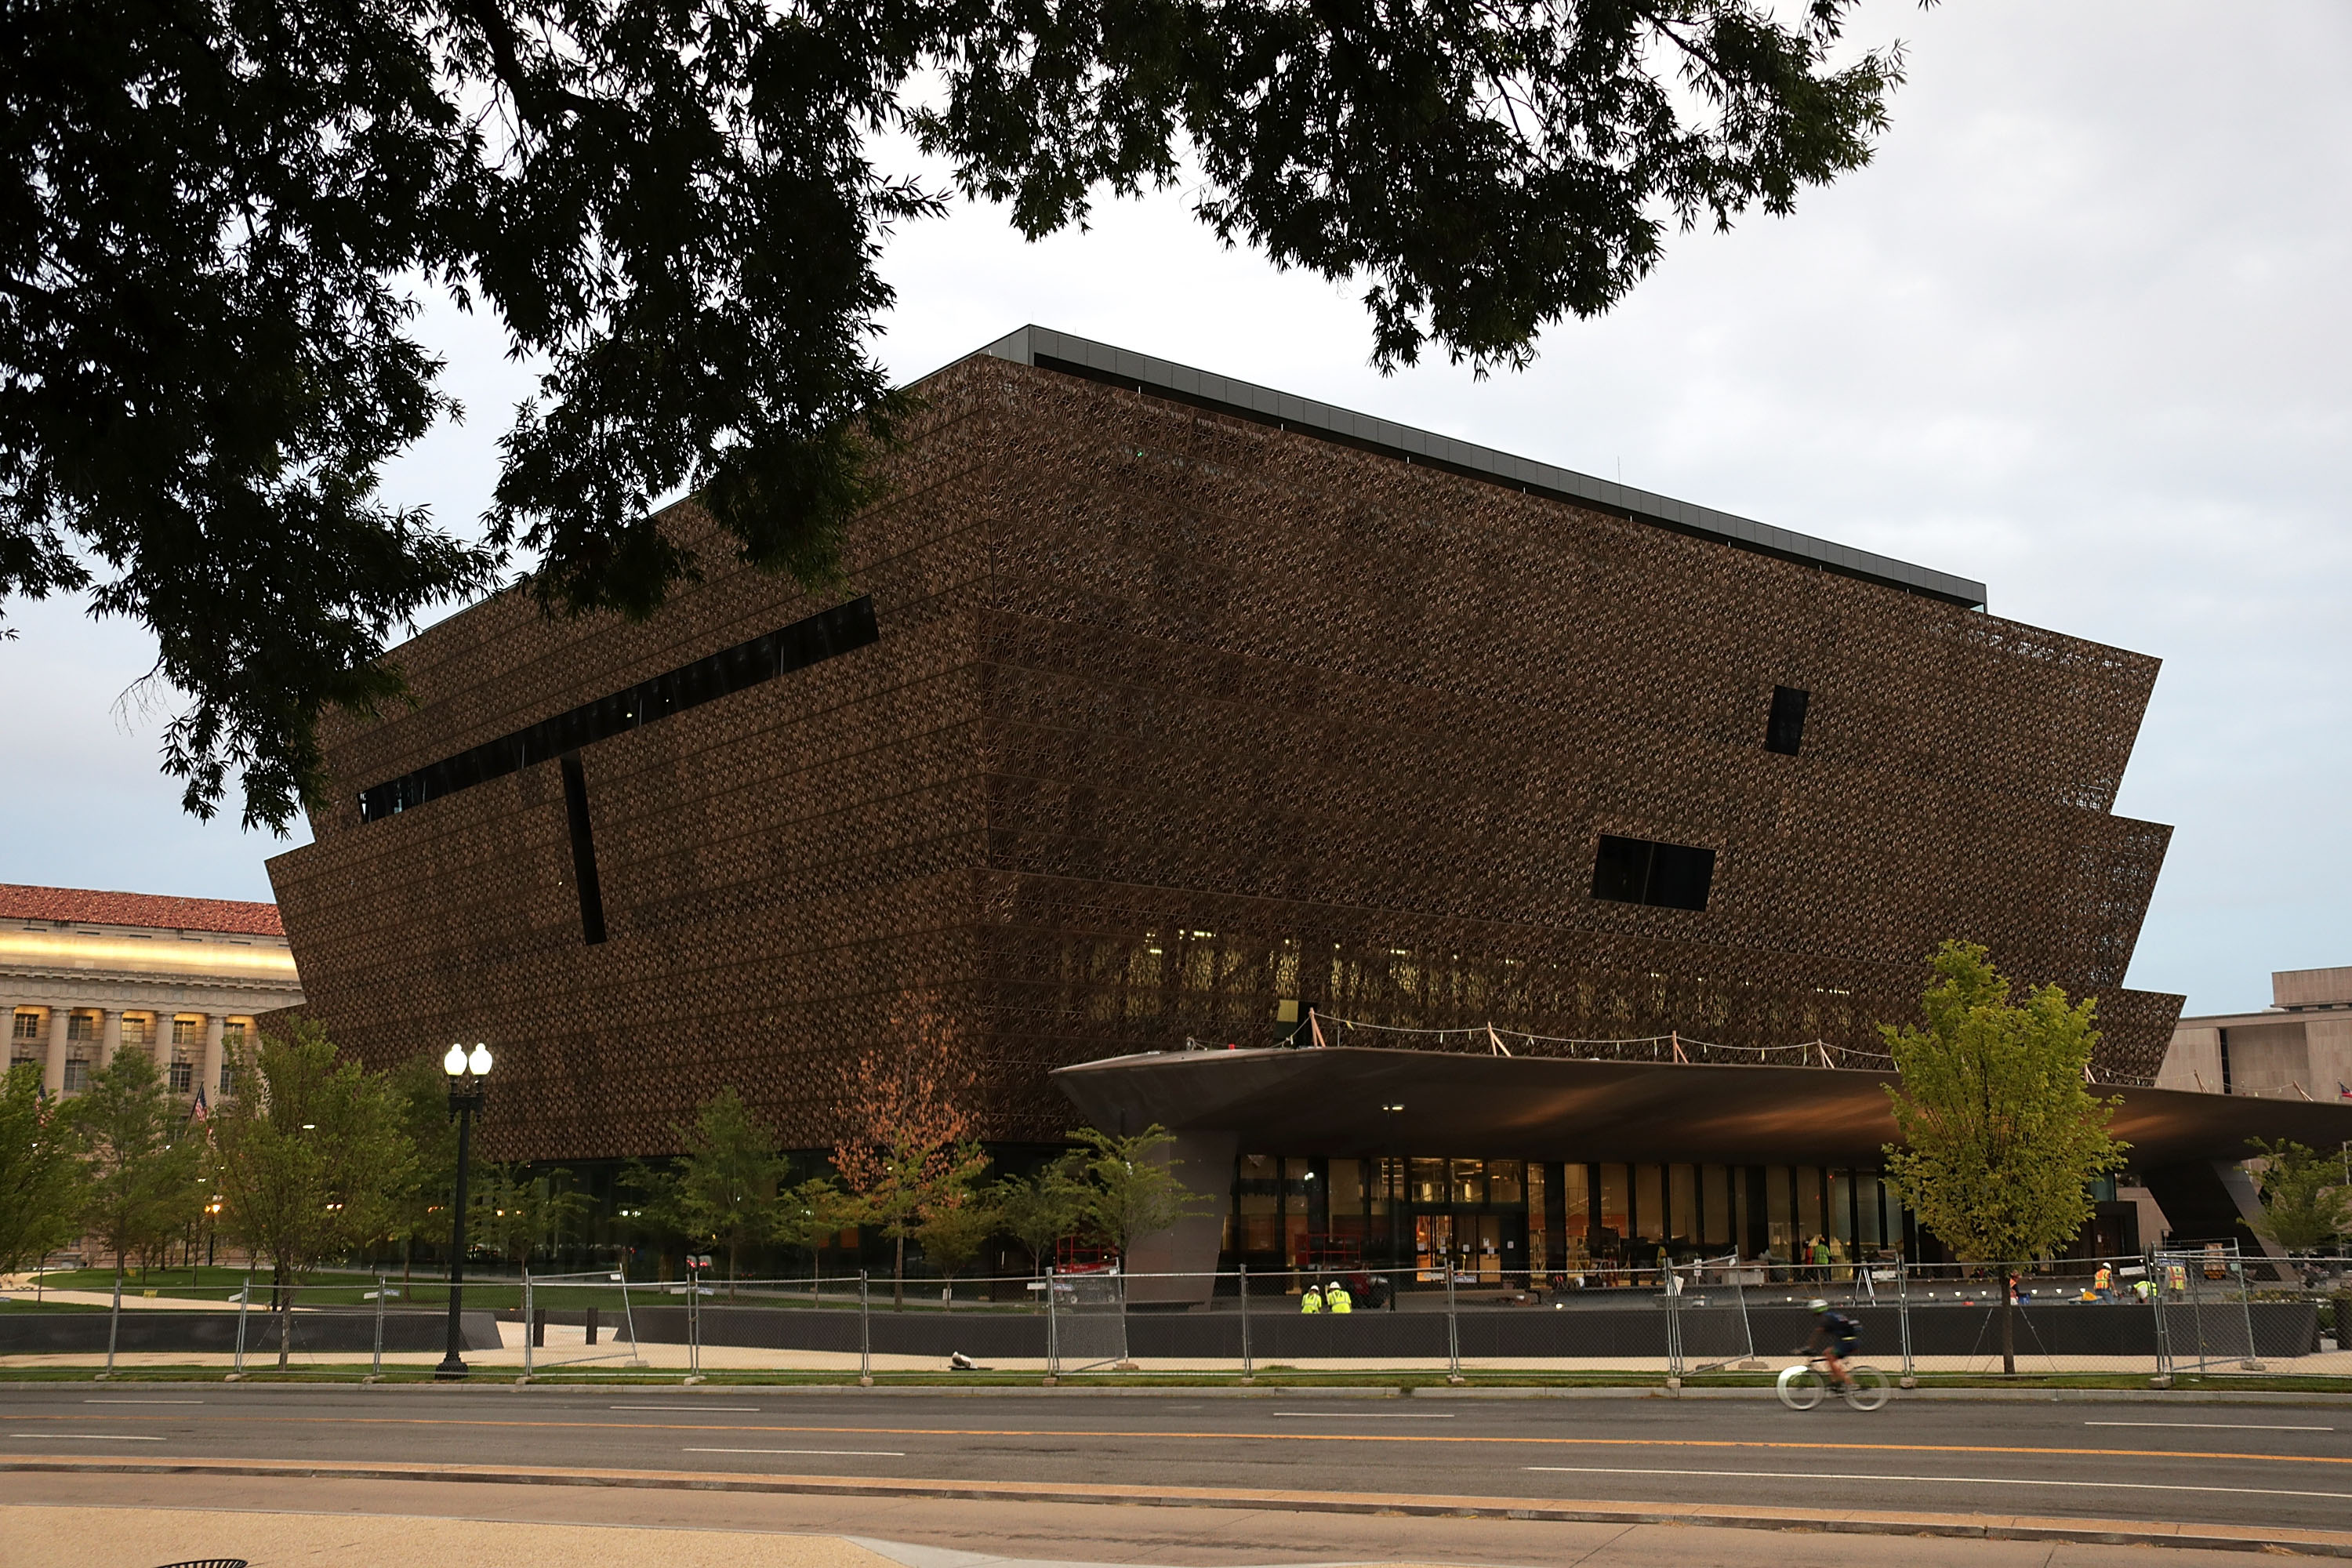 The soon-to-be-opened Smithsonian National Museum of African American History and Culture is seen September 1, 2016 in Washingotn, DC. Alex Wong—Getty Images